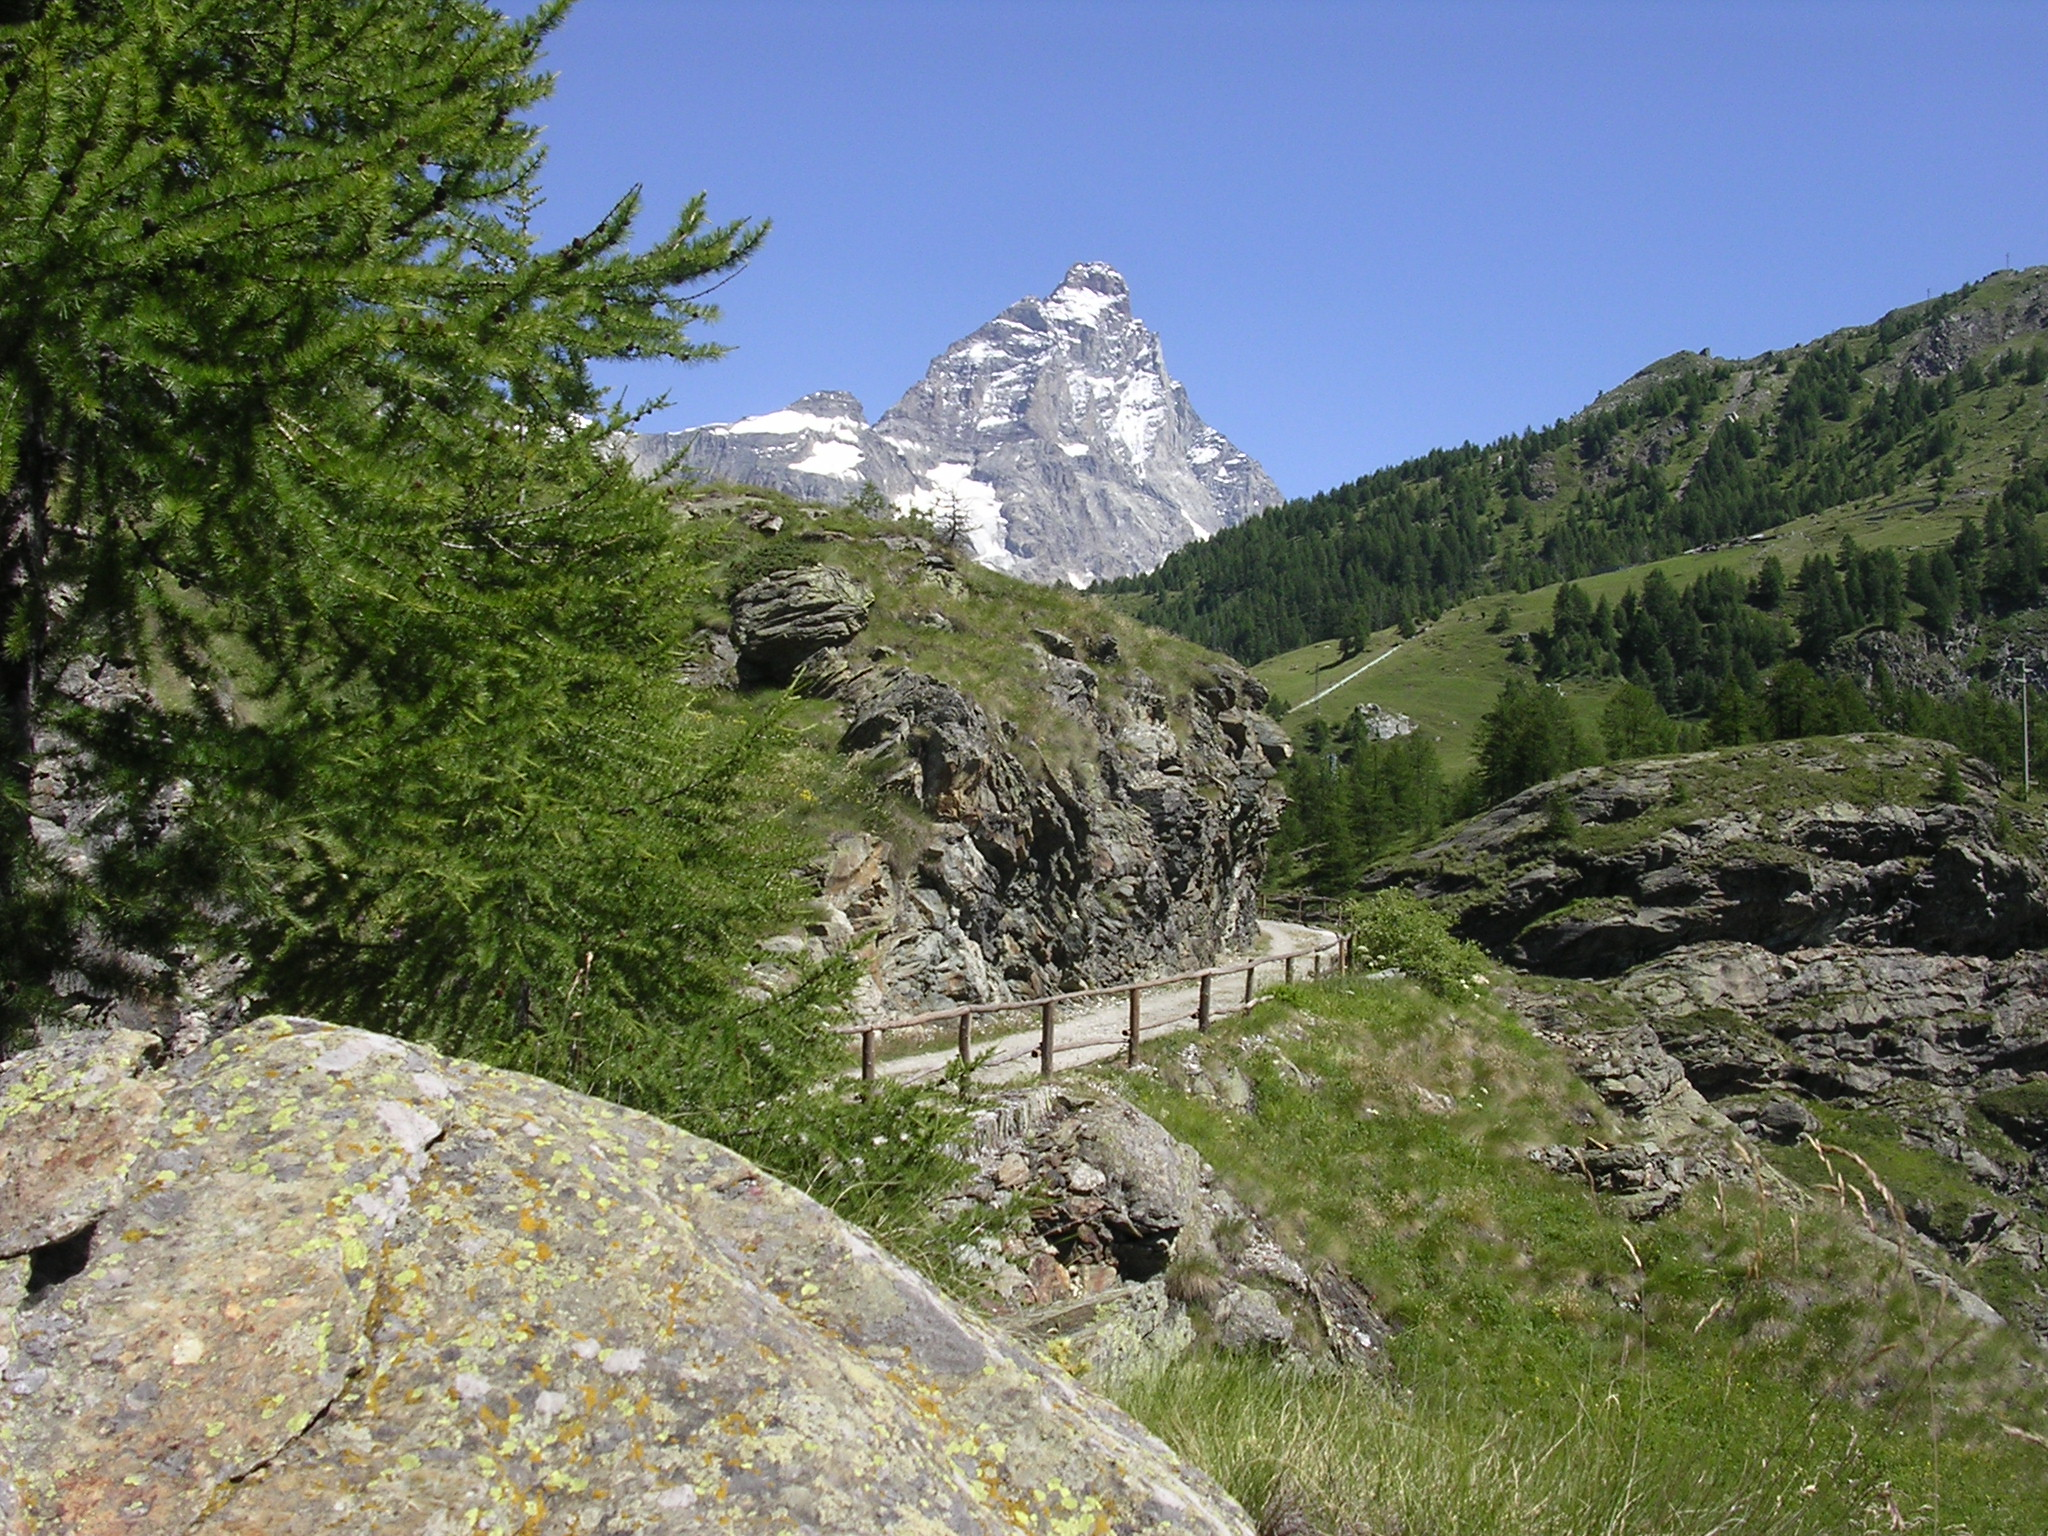 Matterhorn from Breuil-Cervinia